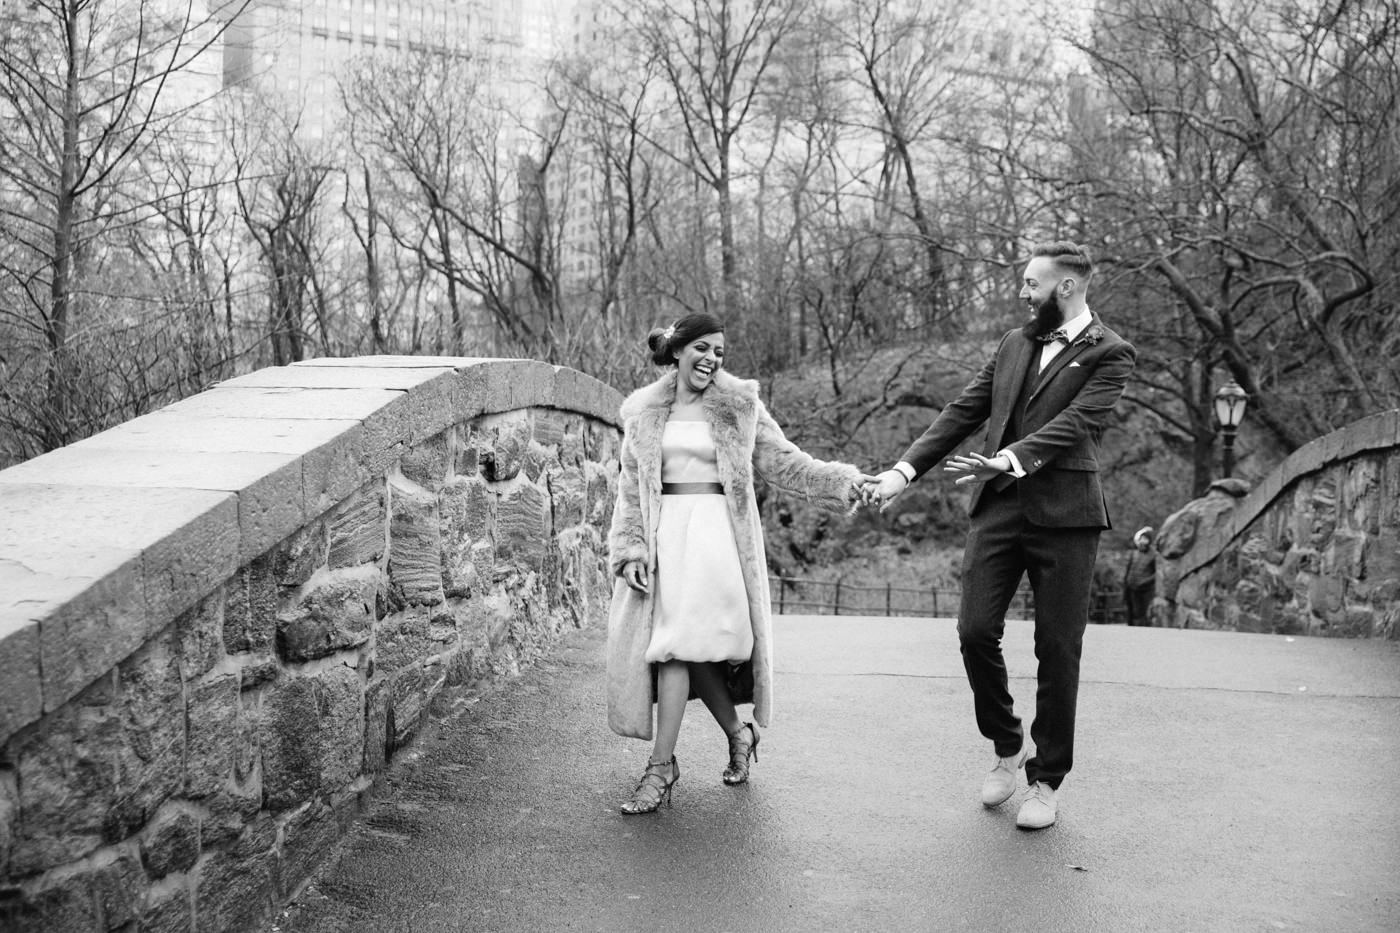 Central-park-wedding-by-Tanya-Isaeva-94.jpg